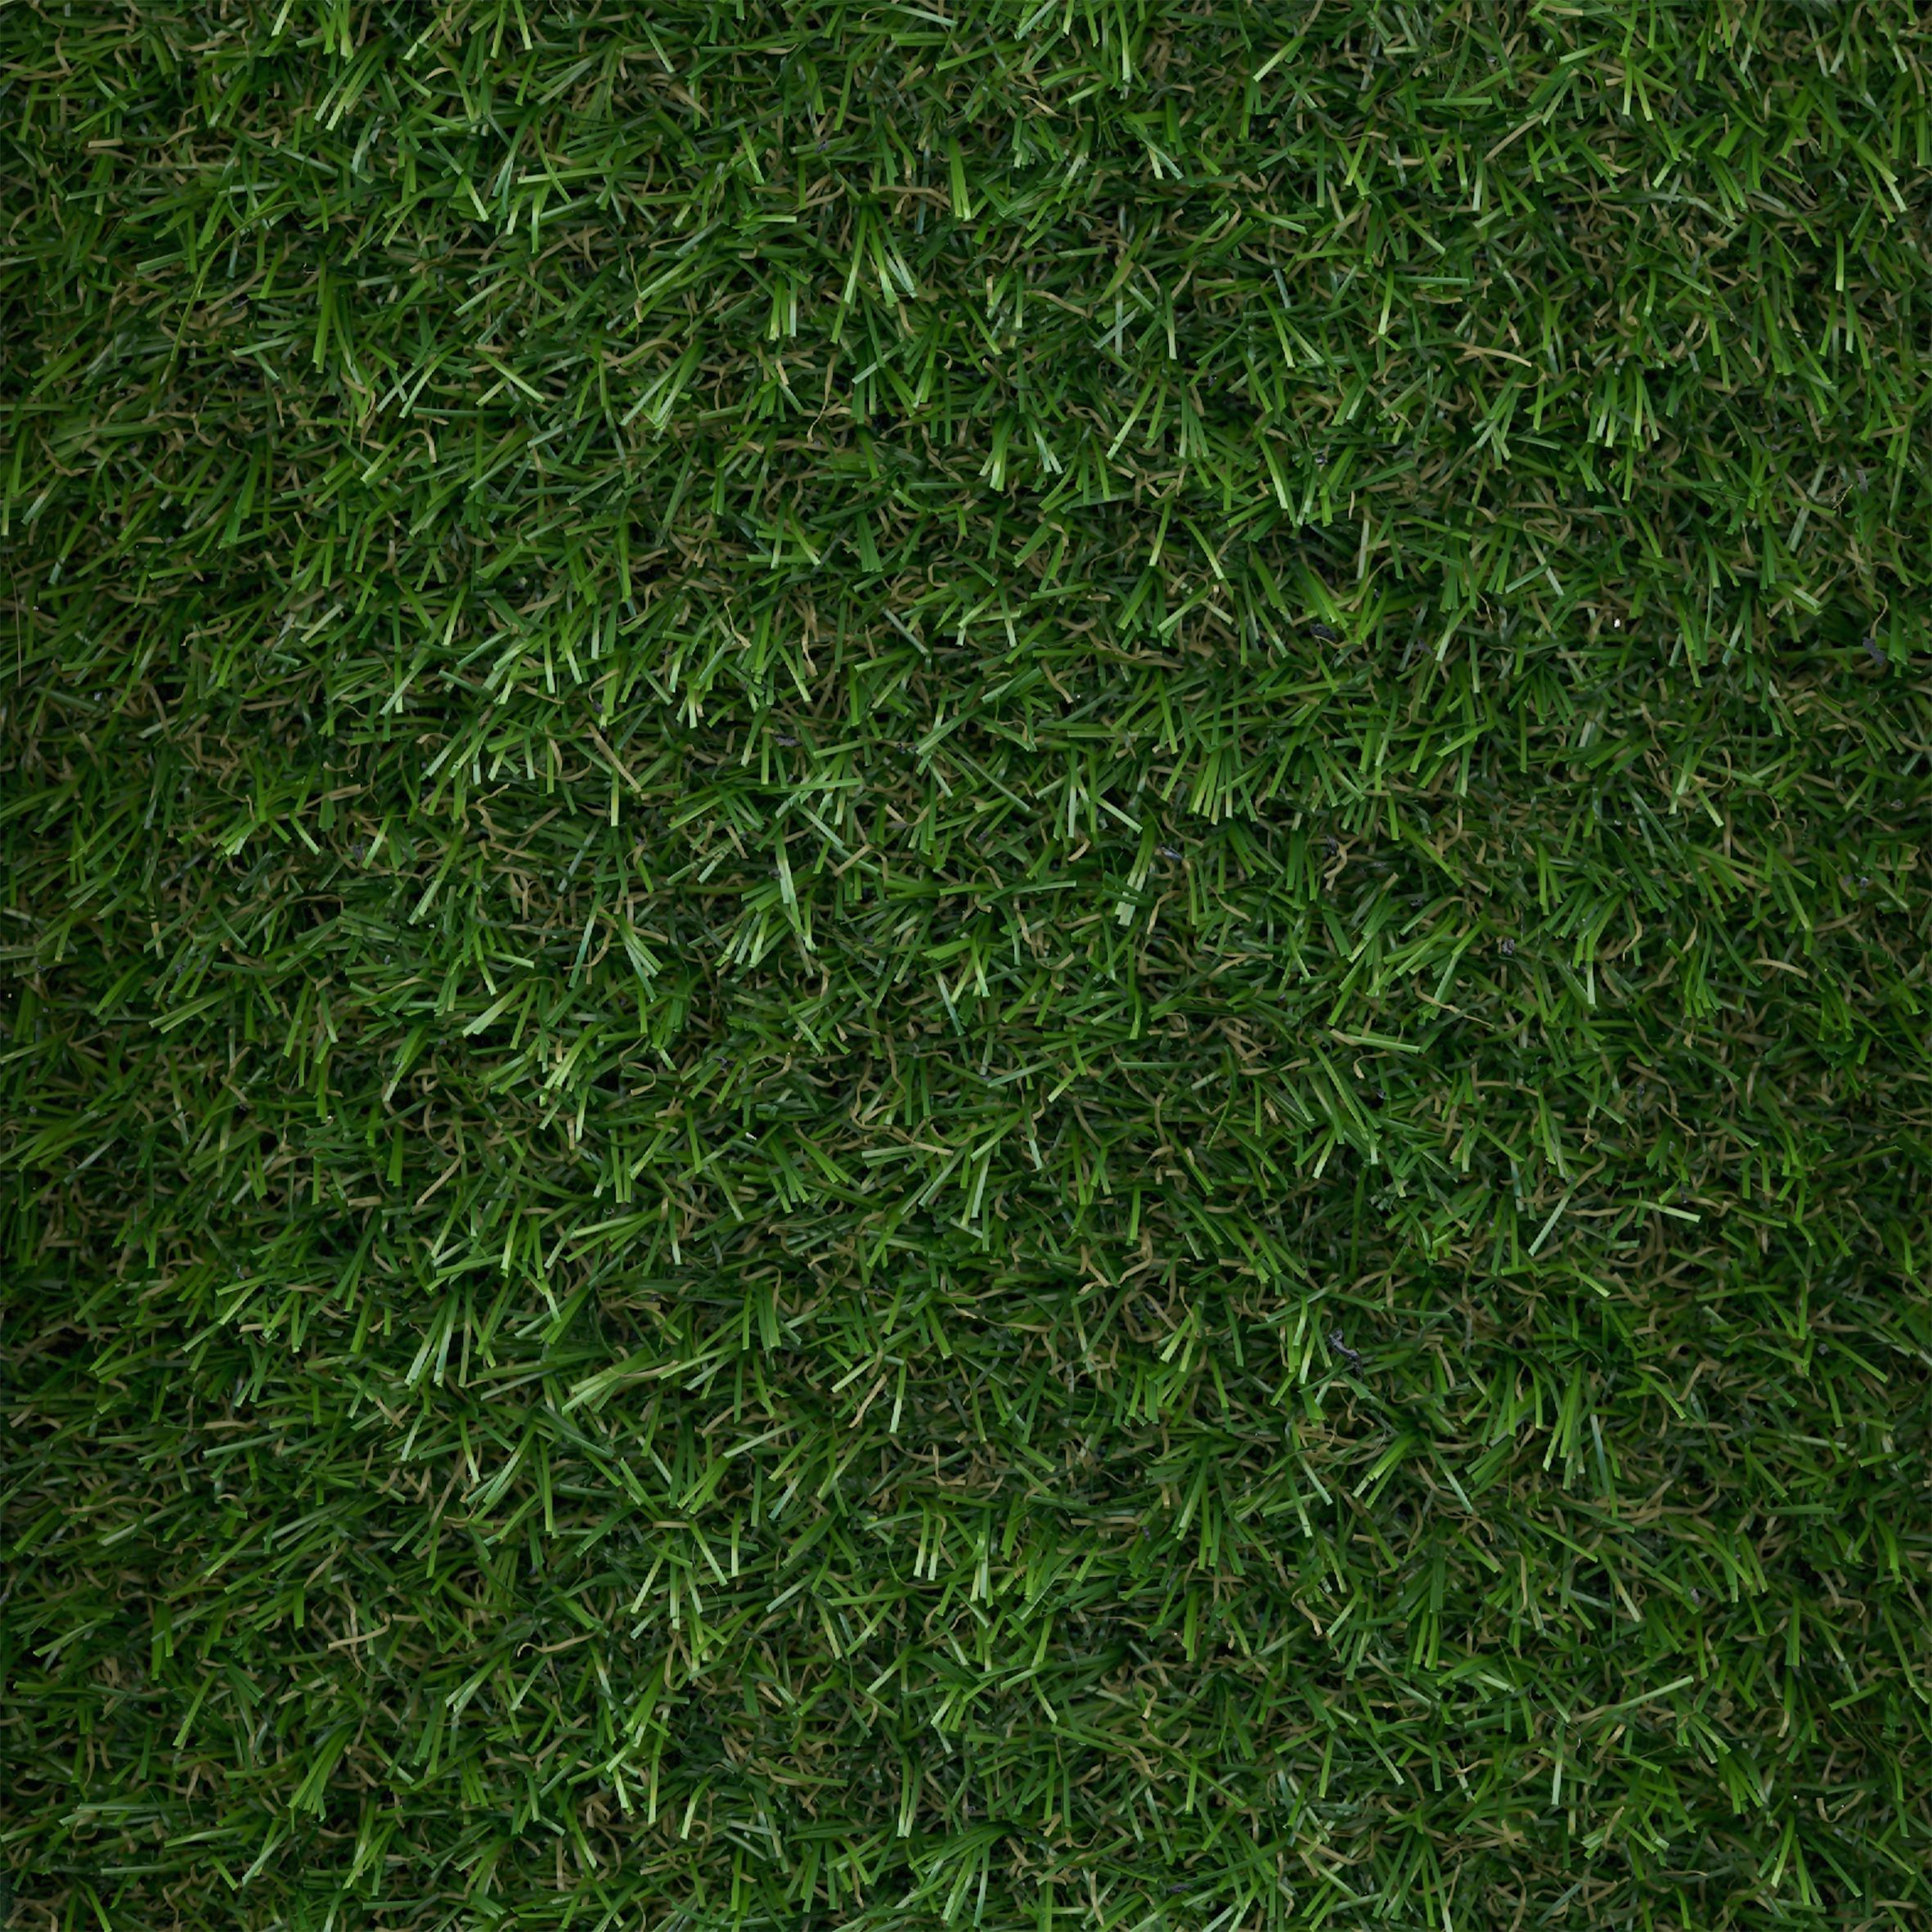 Eton Medium Density Artificial Grass W 2 M X L 4m X T 15mm Departments Diy At B Amp Q